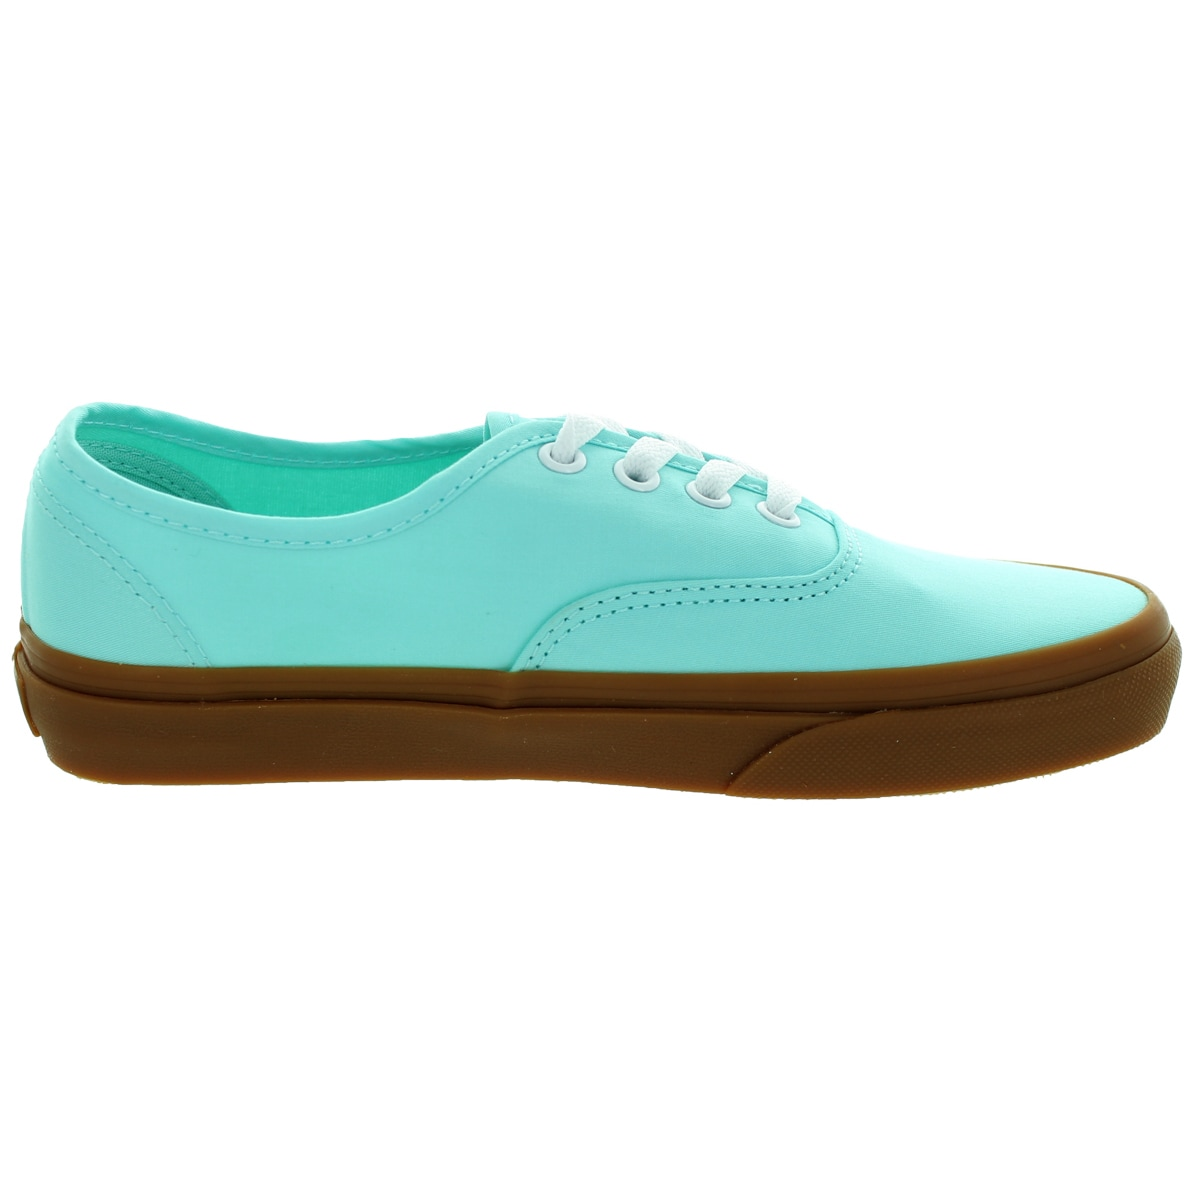 58486258fca Shop Vans Unisex Authentic Brushed Twill Blue Tint Gum Skate Shoe - Free  Shipping Today - Overstock.com - 12117908